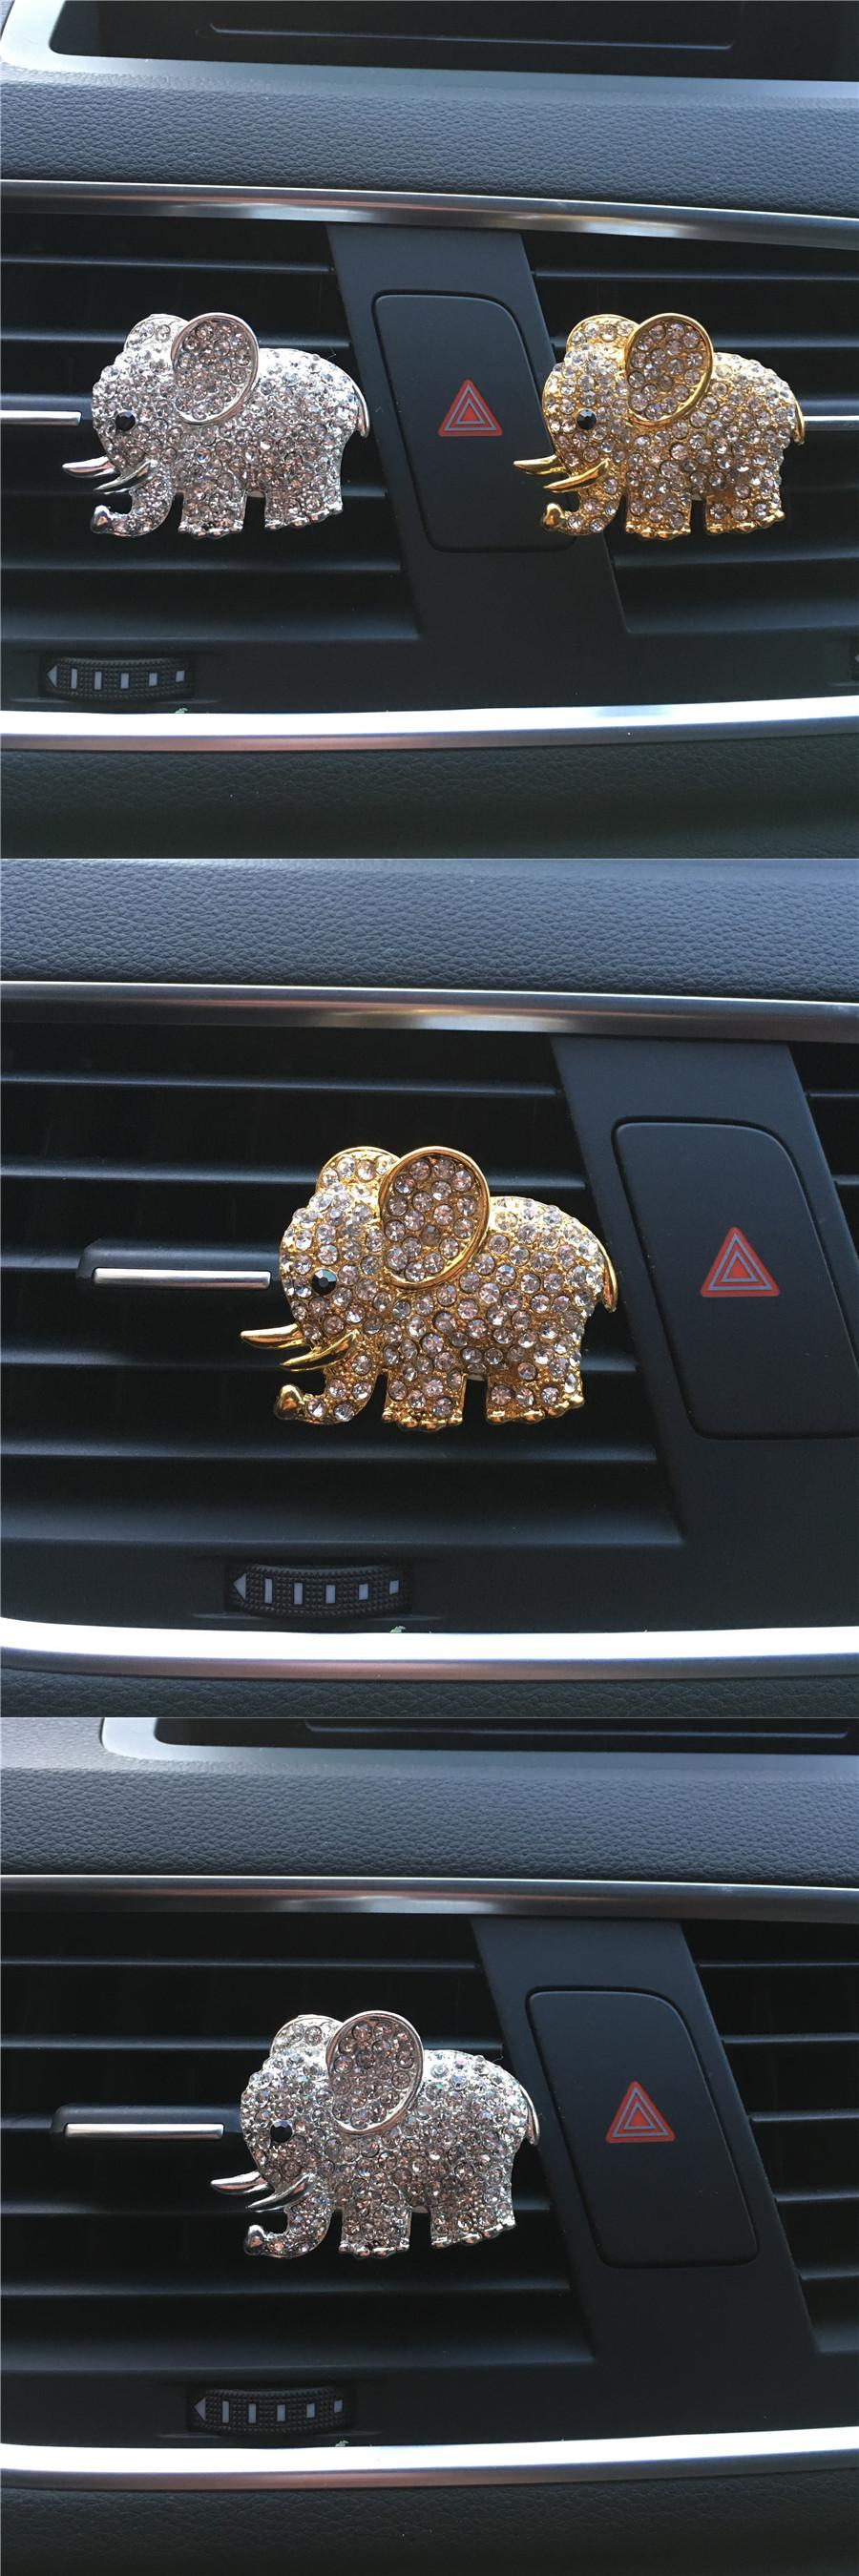 Visit To Buy High Grade Diamond Crystal Elephant Car Perfume Clip Lady Car Styling Air Outlet Accessories Ca Elephant Accessories Elephant Car Elephant Lover